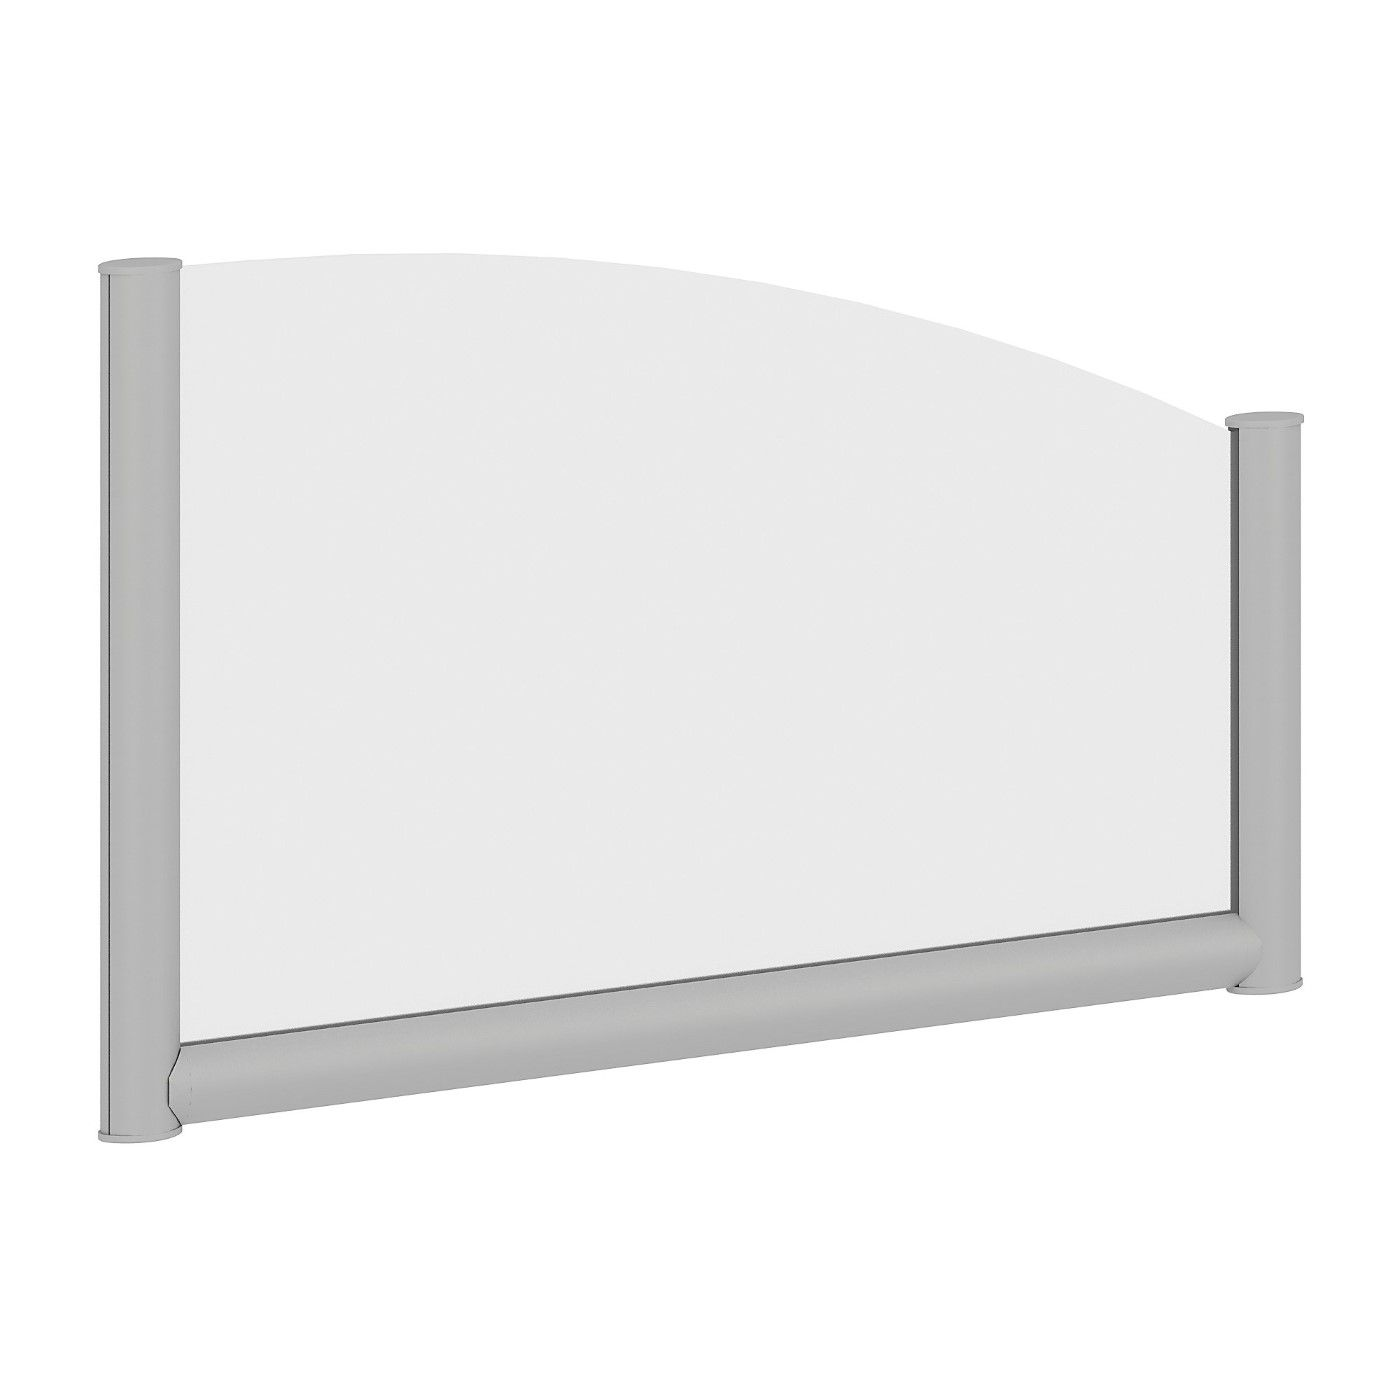 BUSH BUSINESS FURNITURE 30W DESK DIVIDER PRIVACY PANEL. FREE SHIPPING